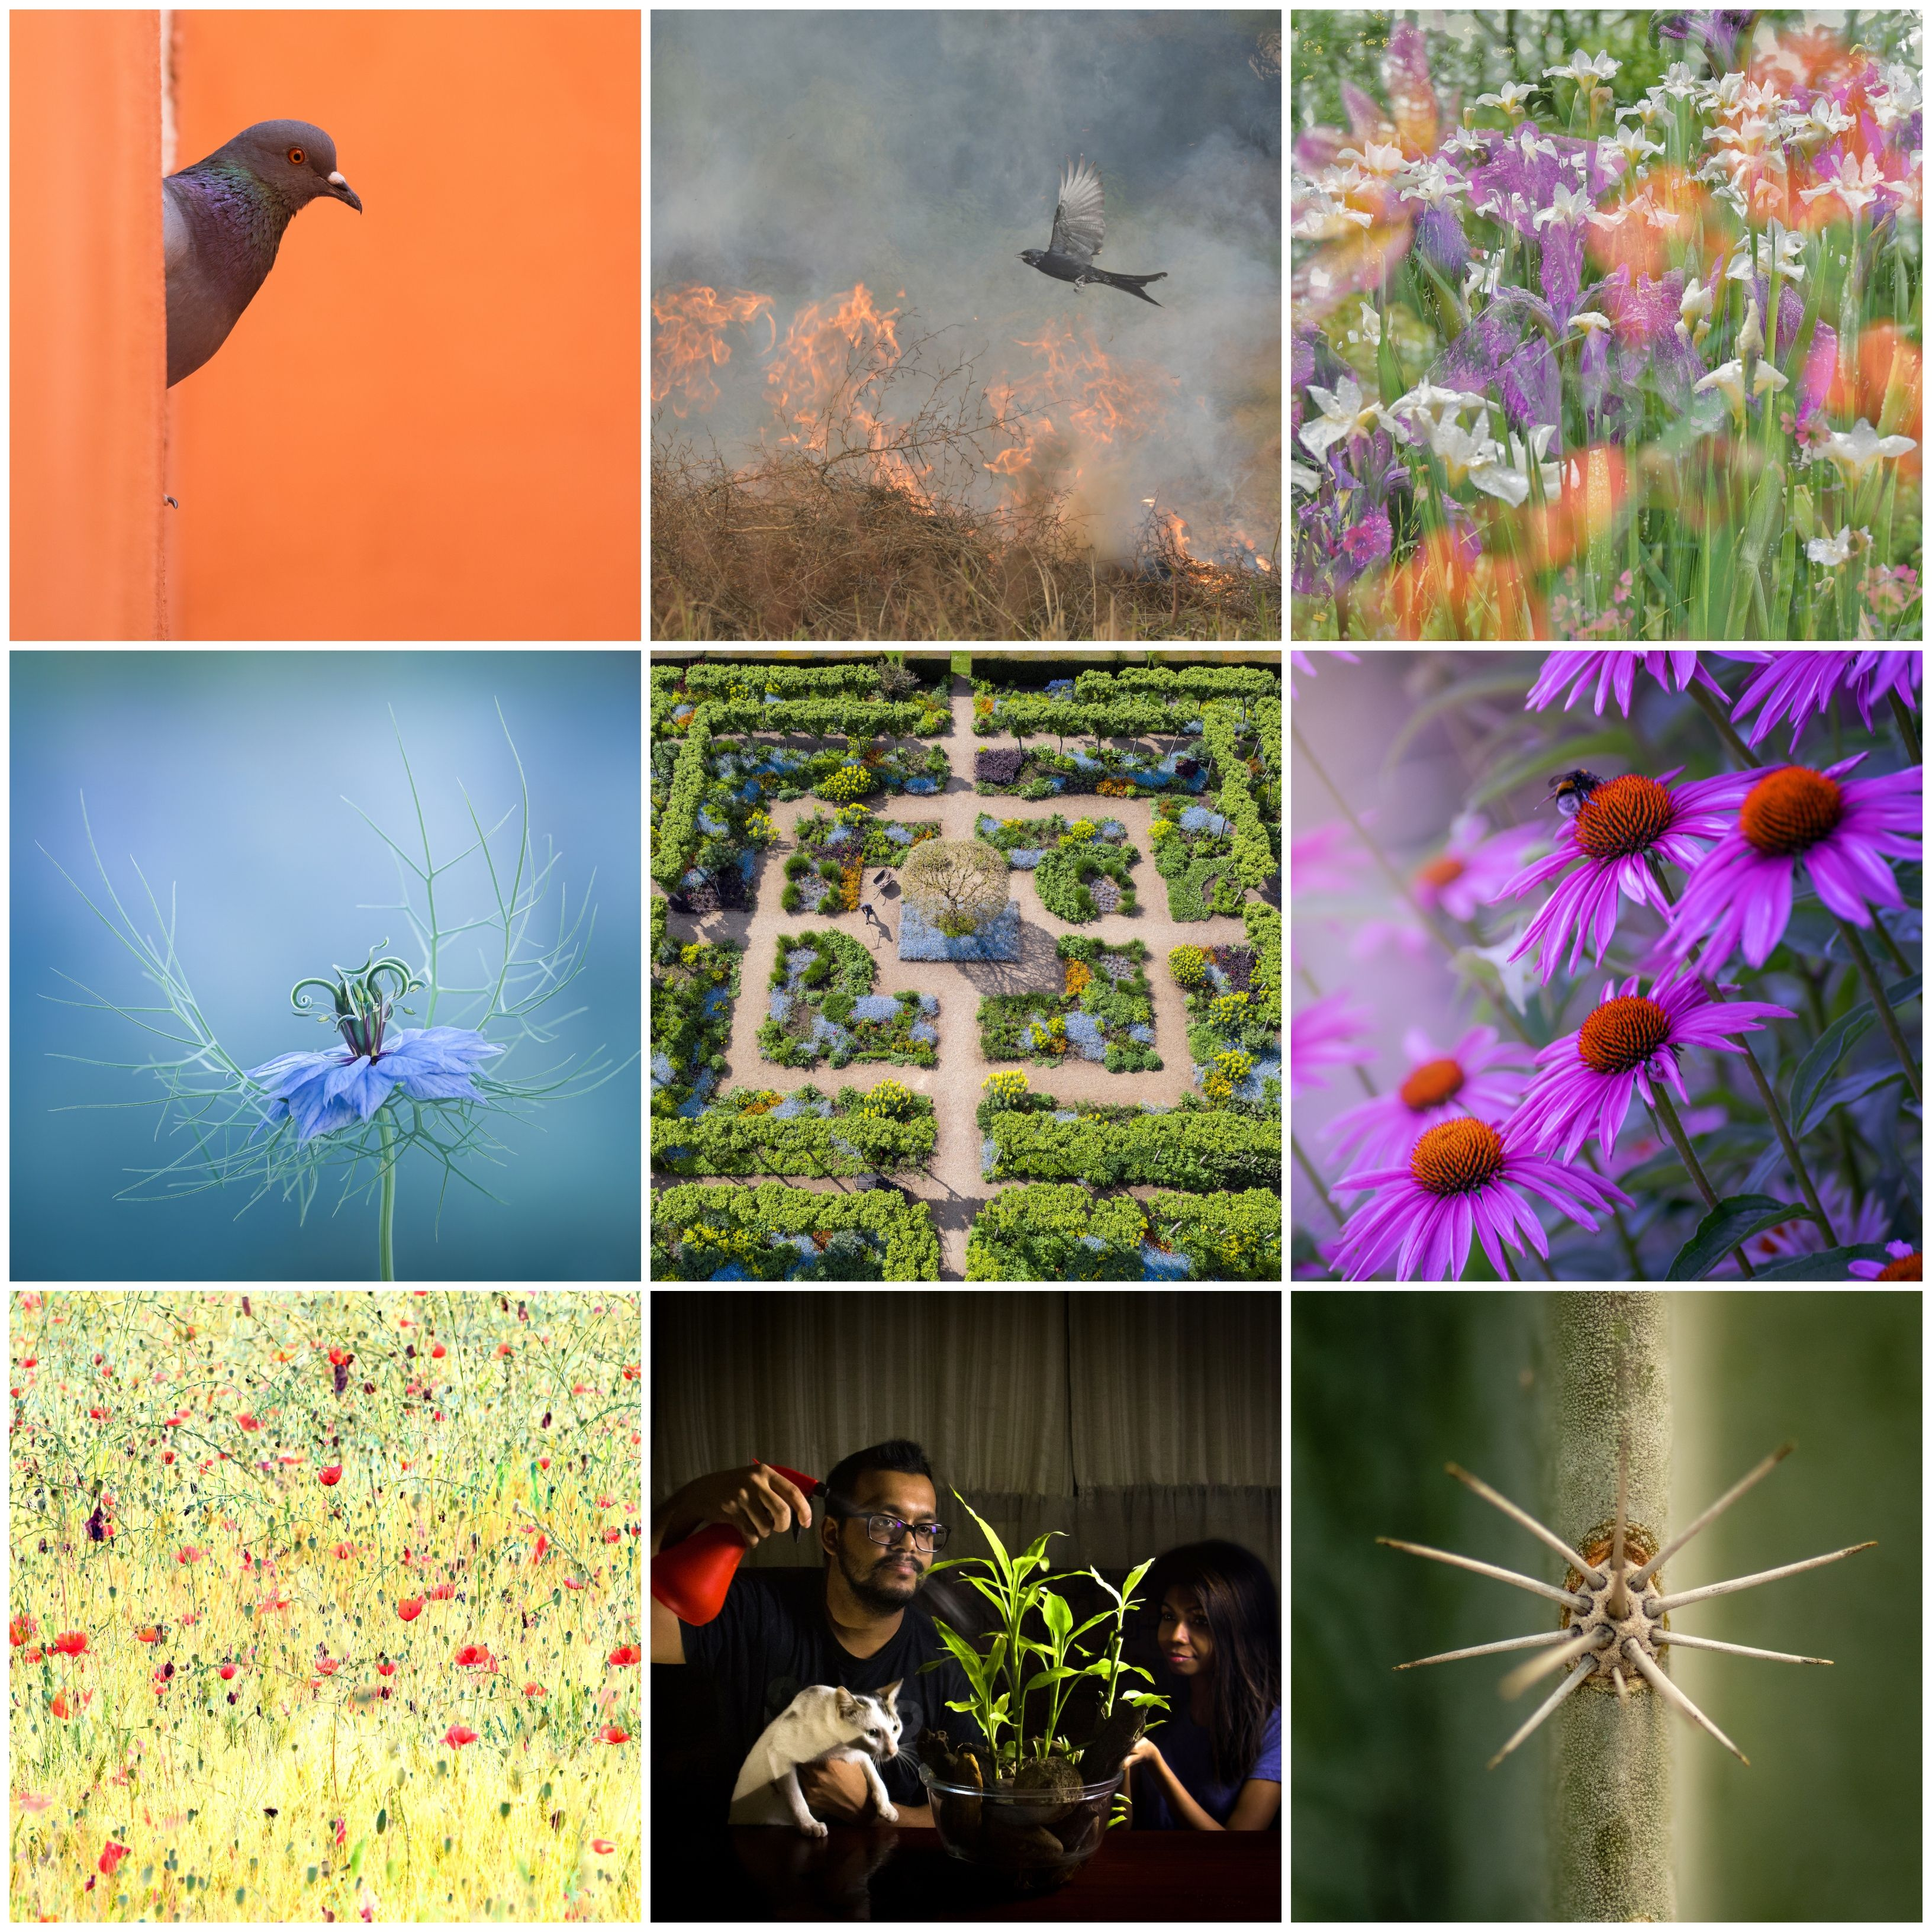 RHS Photographic Competition 2021: see the winning photos